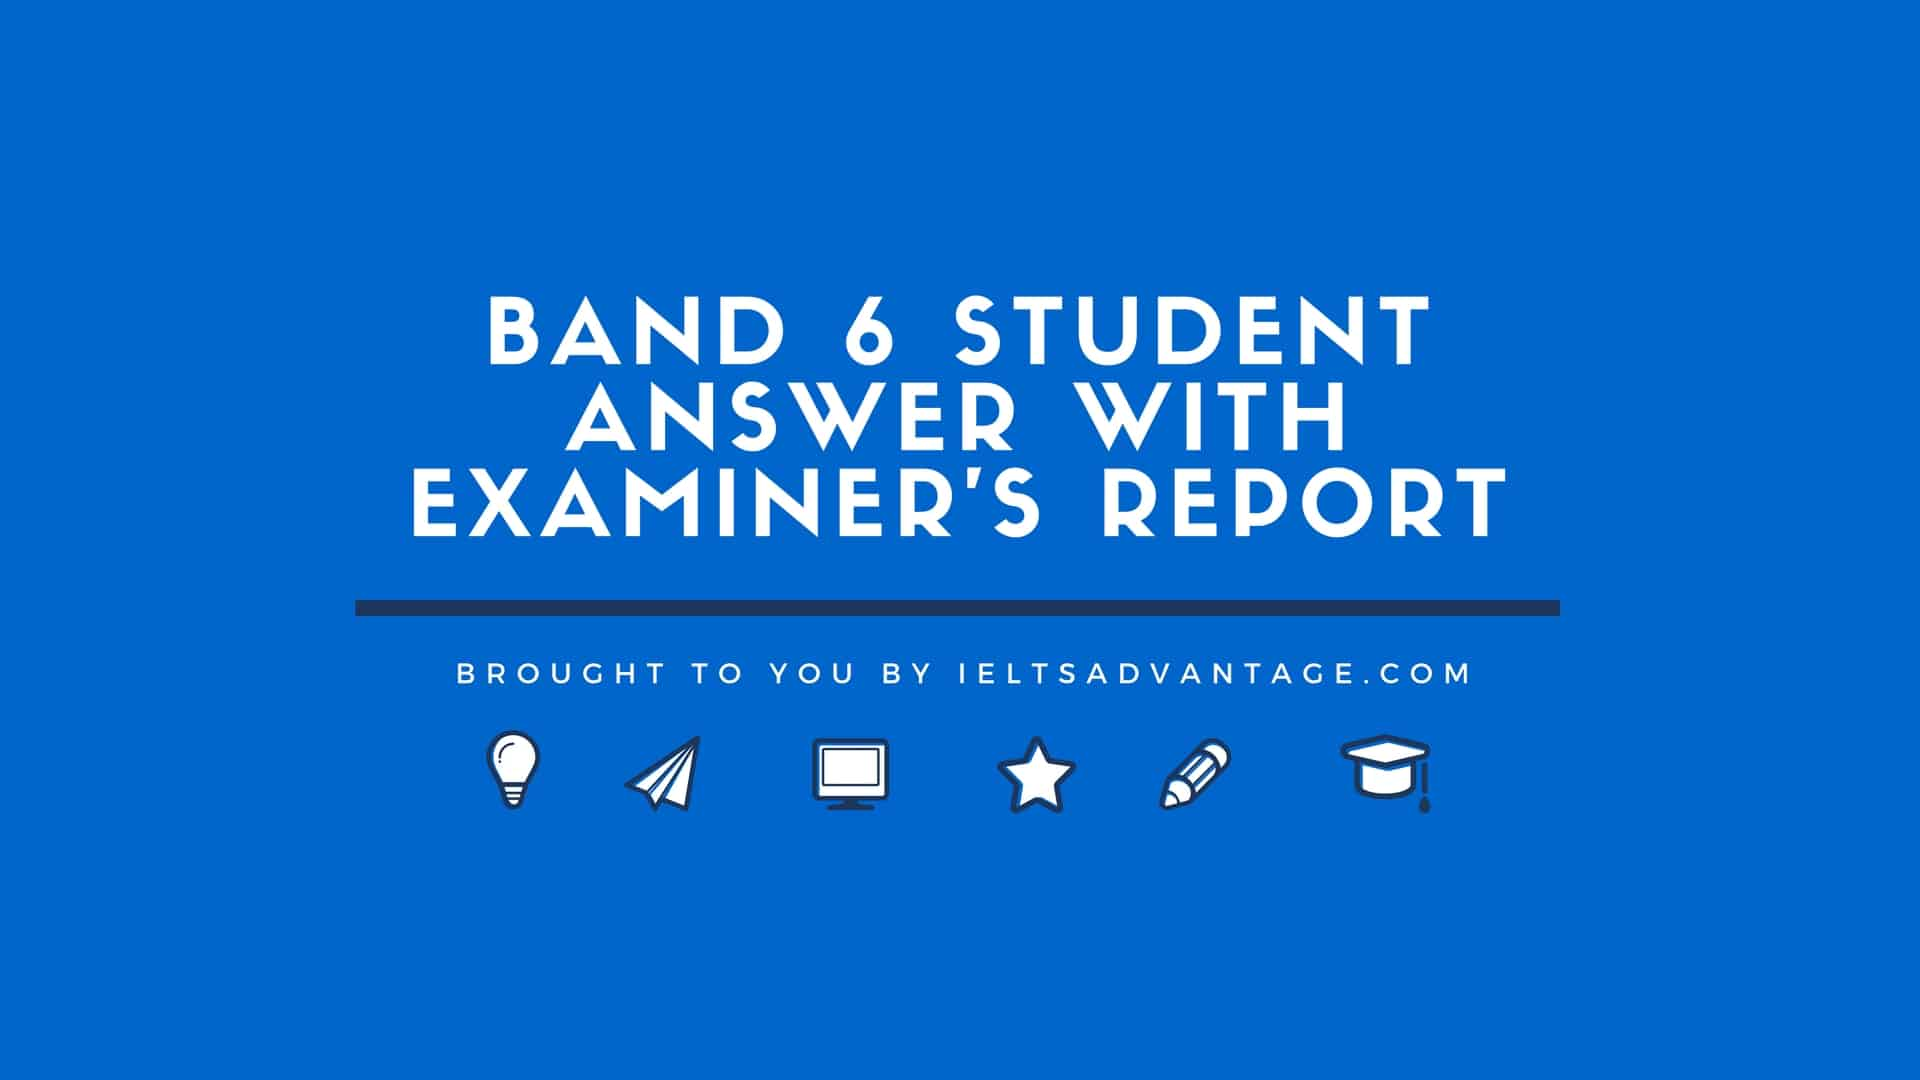 241 Band 6 Student Answer with Examiner's Report